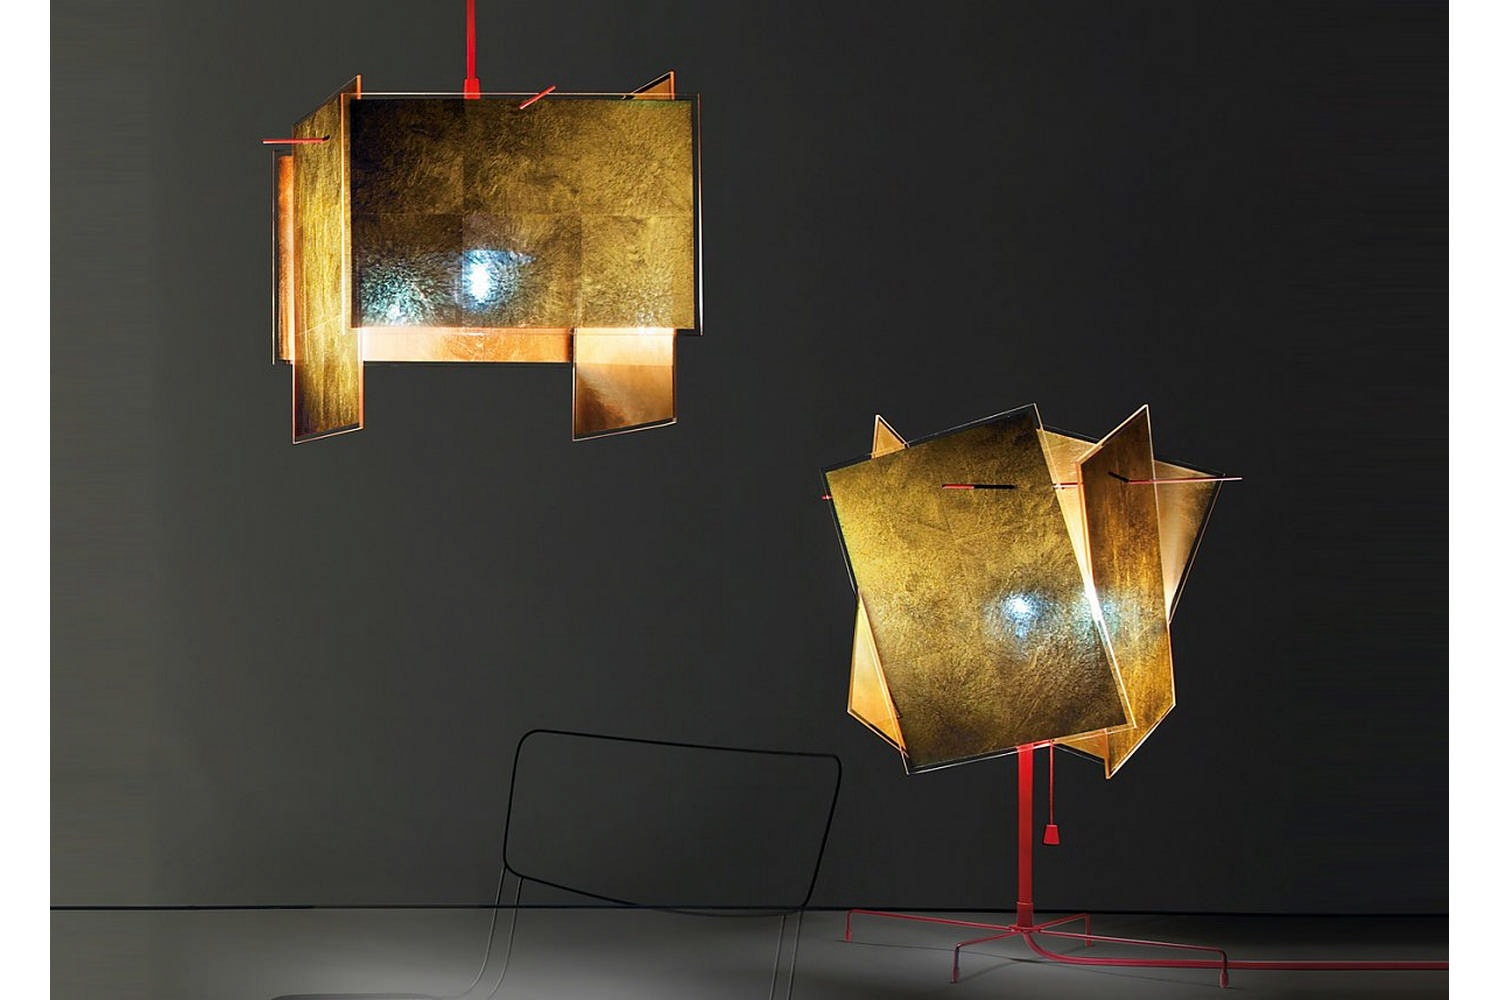 24 Karat Blau Suspension Lamp by Axel Schmid for Ingo Maurer